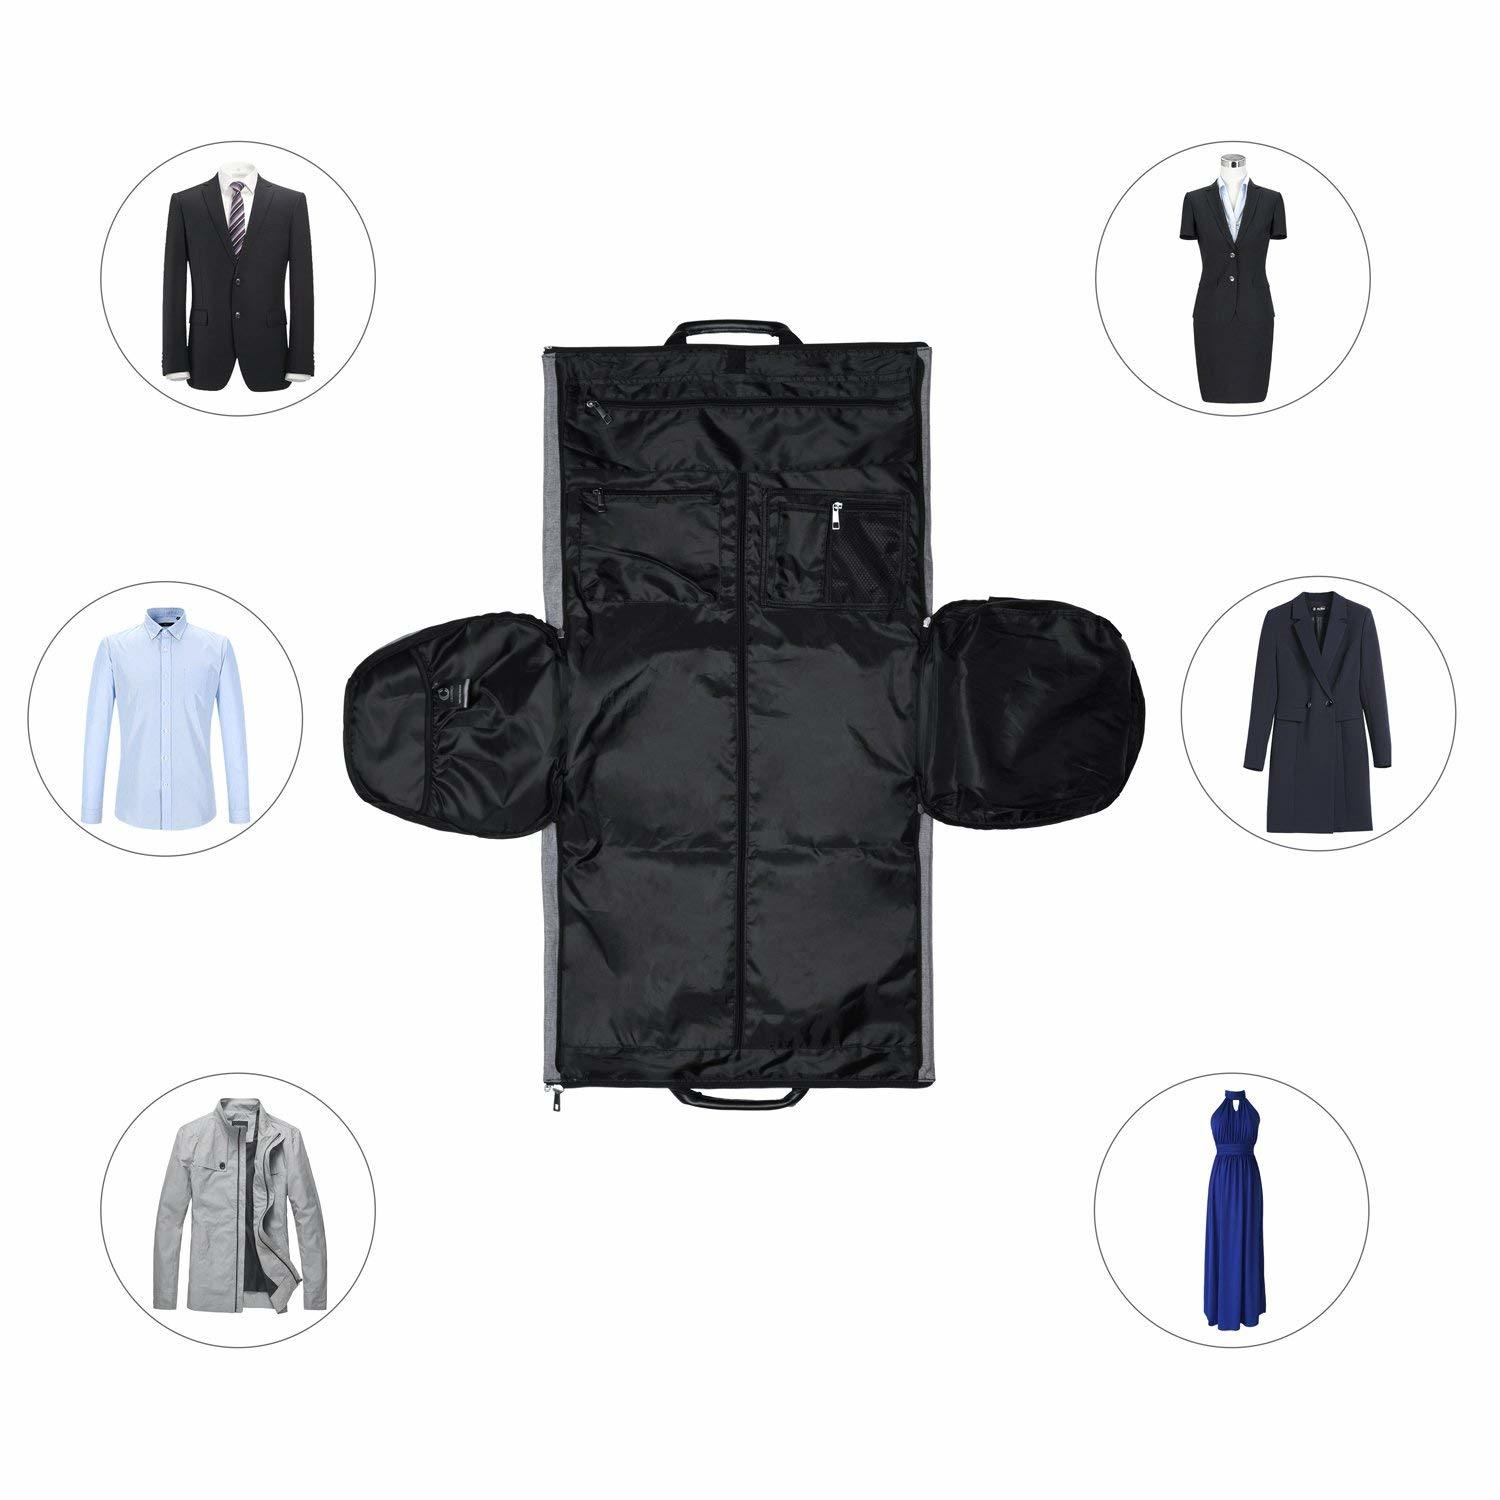 77f1f87ecb Foldable 2 in 1 Travel Garment Duffle Bag for Men and Women with Shoe  Compartment